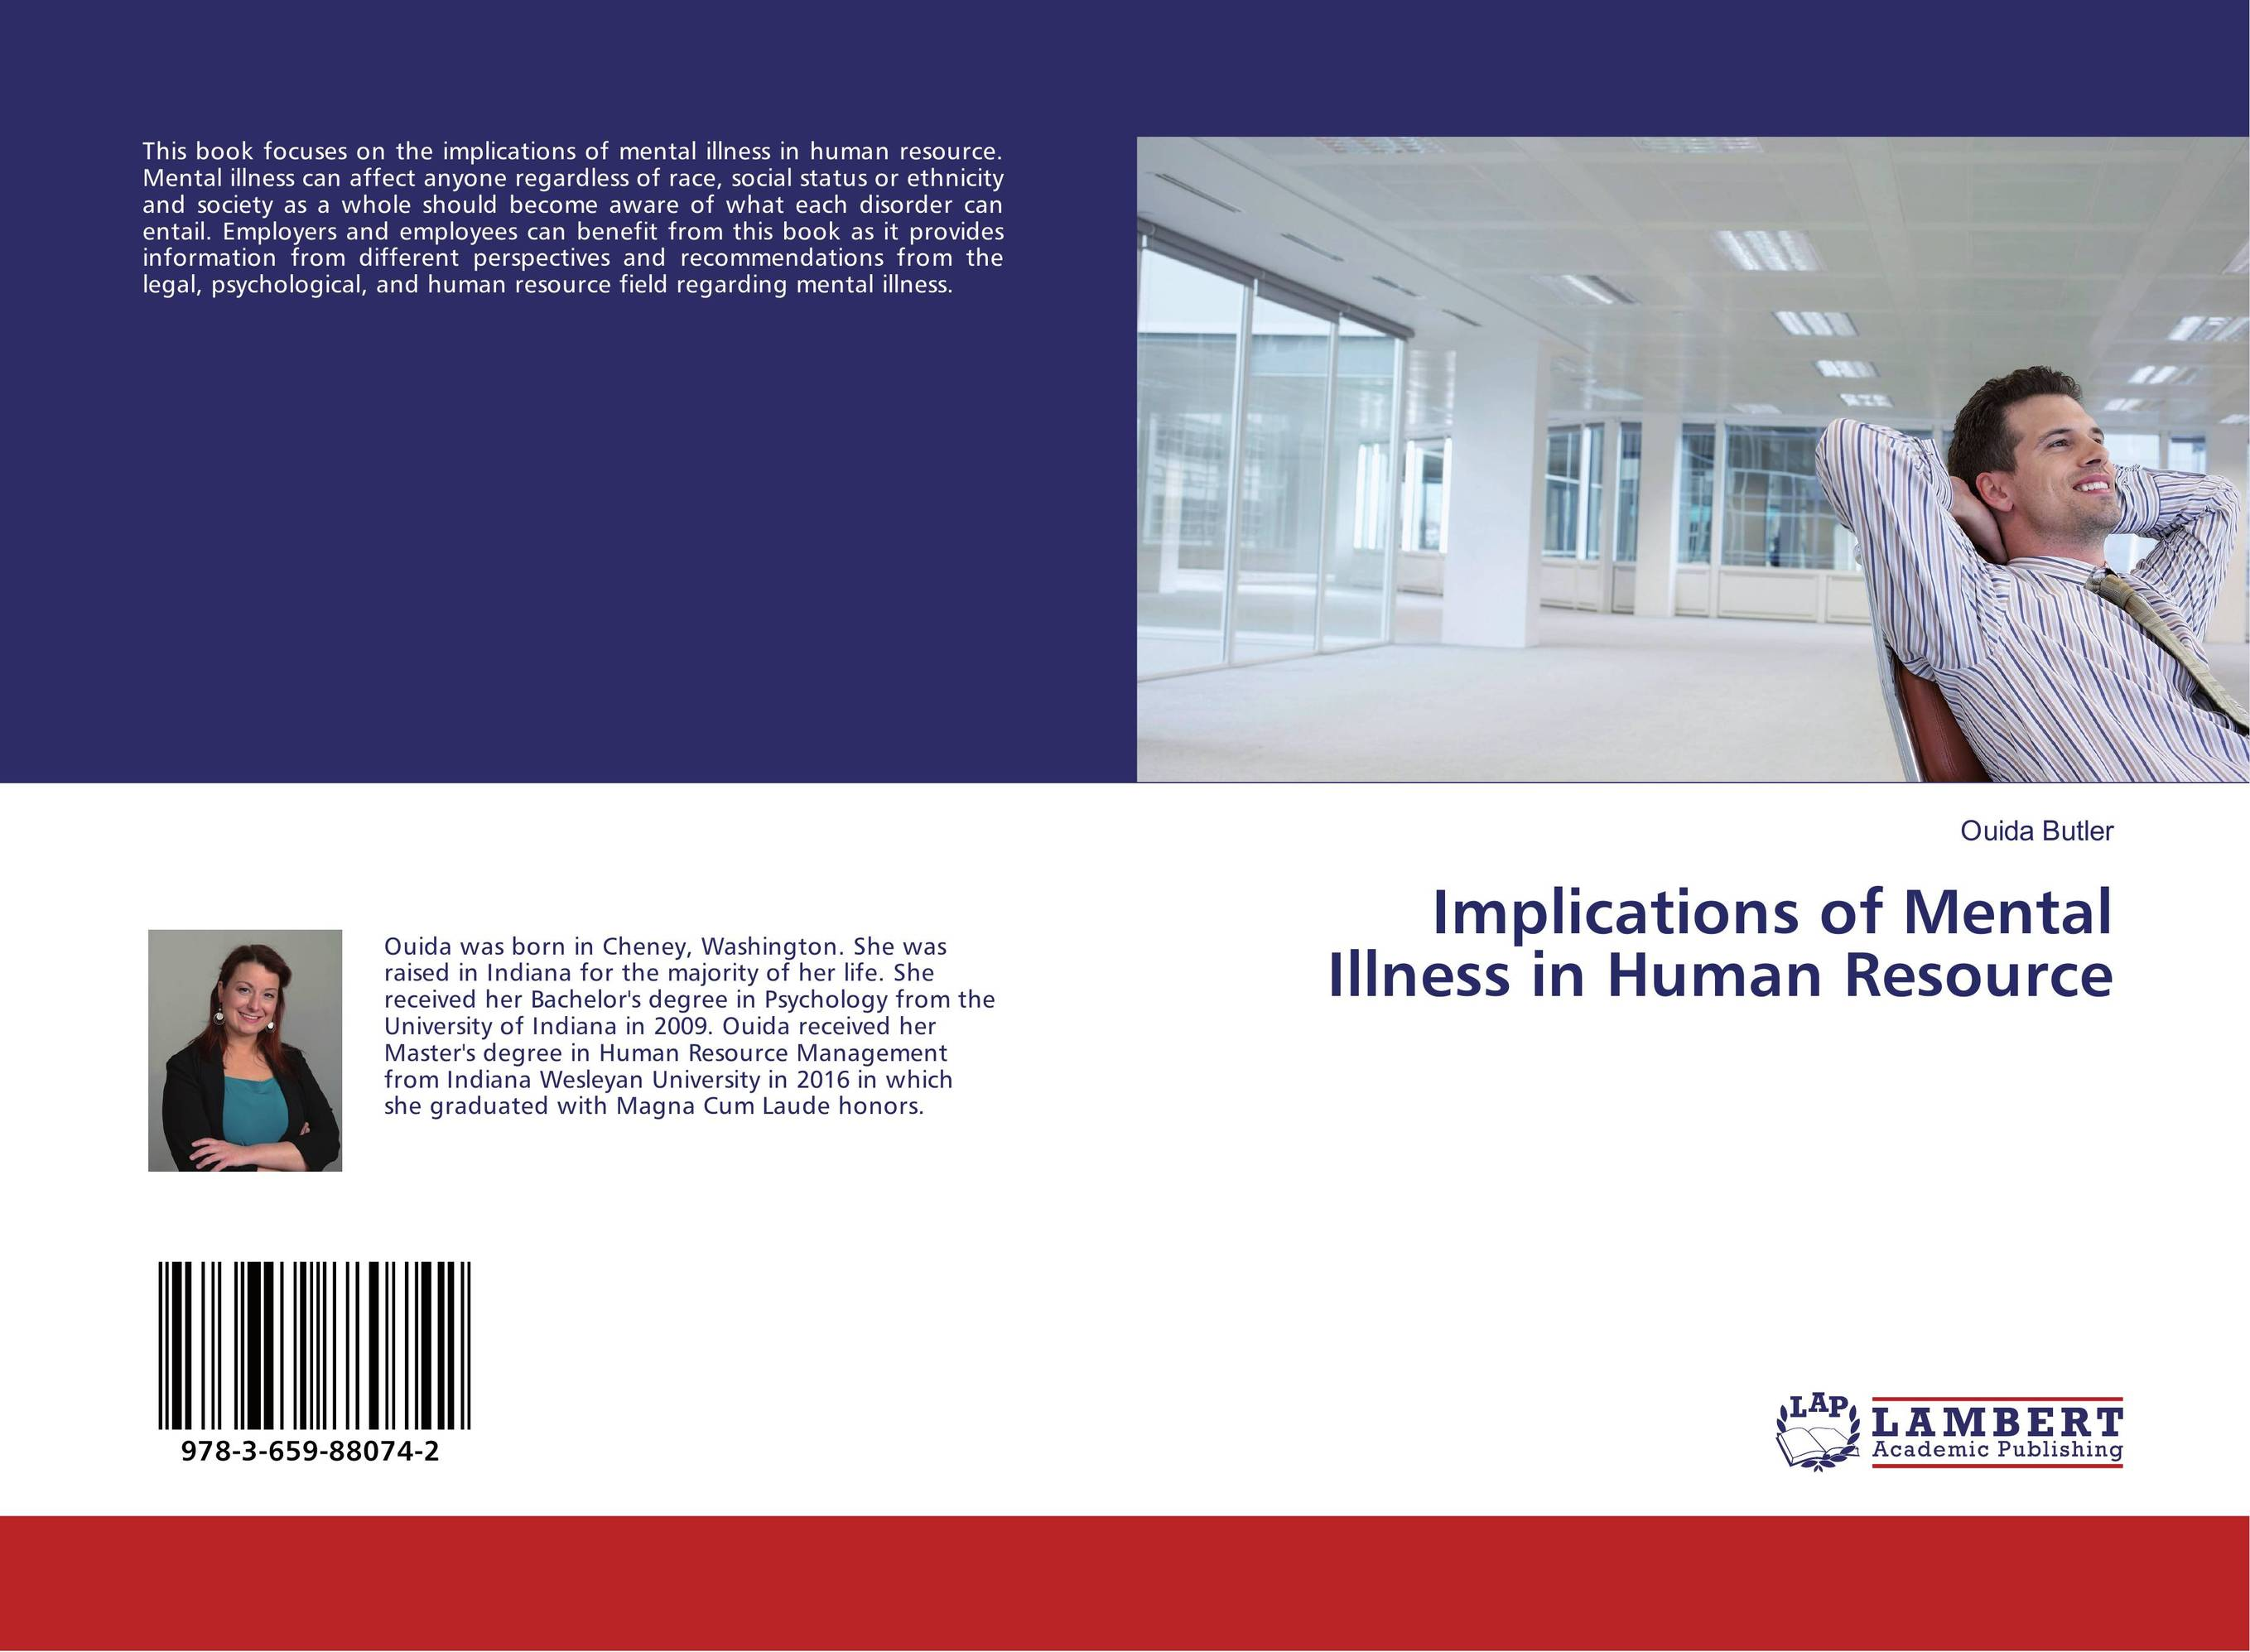 Implications of Mental Illness in Human Resource